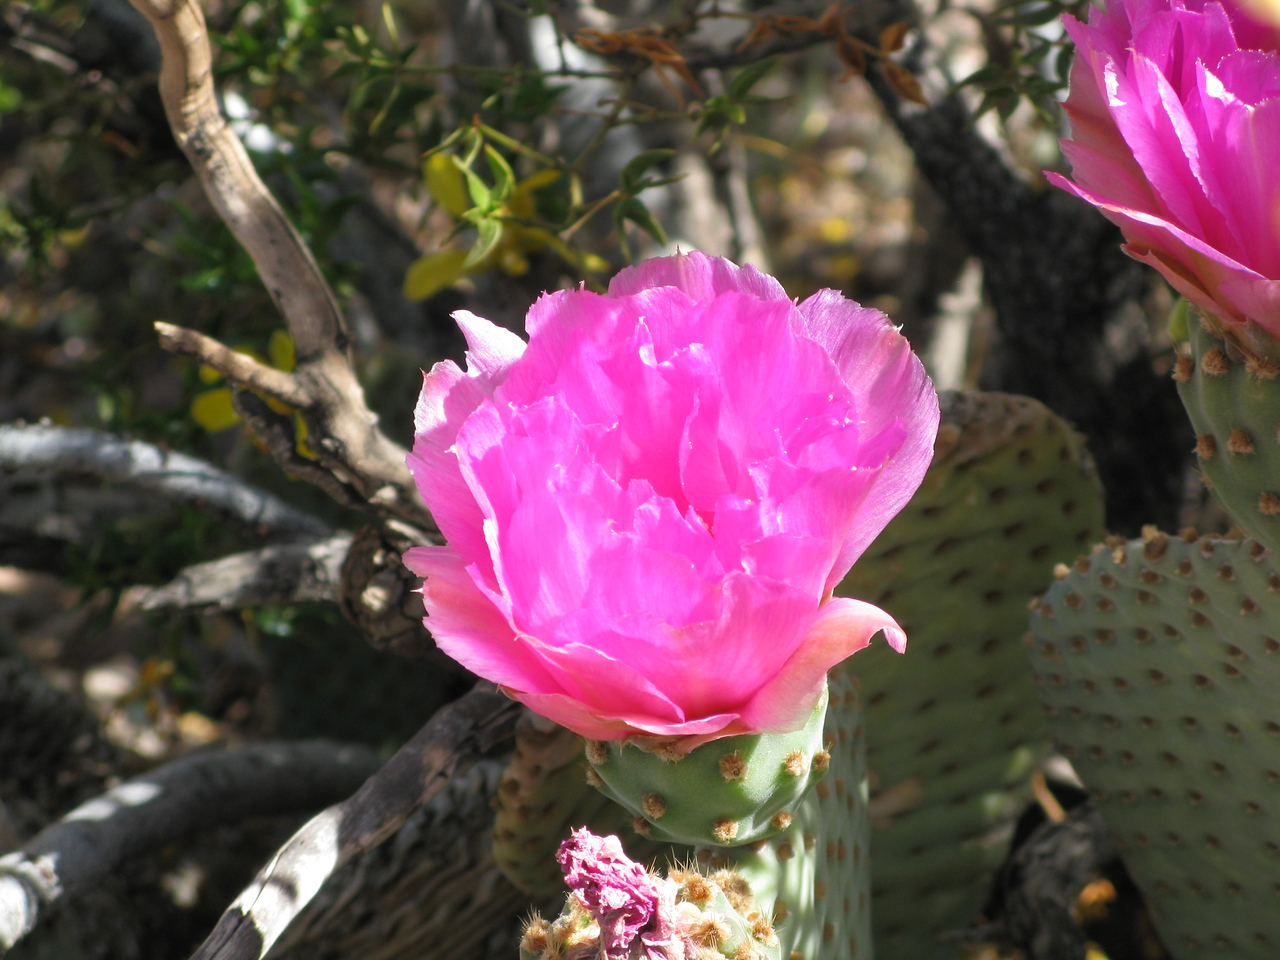 A cactus blossom along the trail.